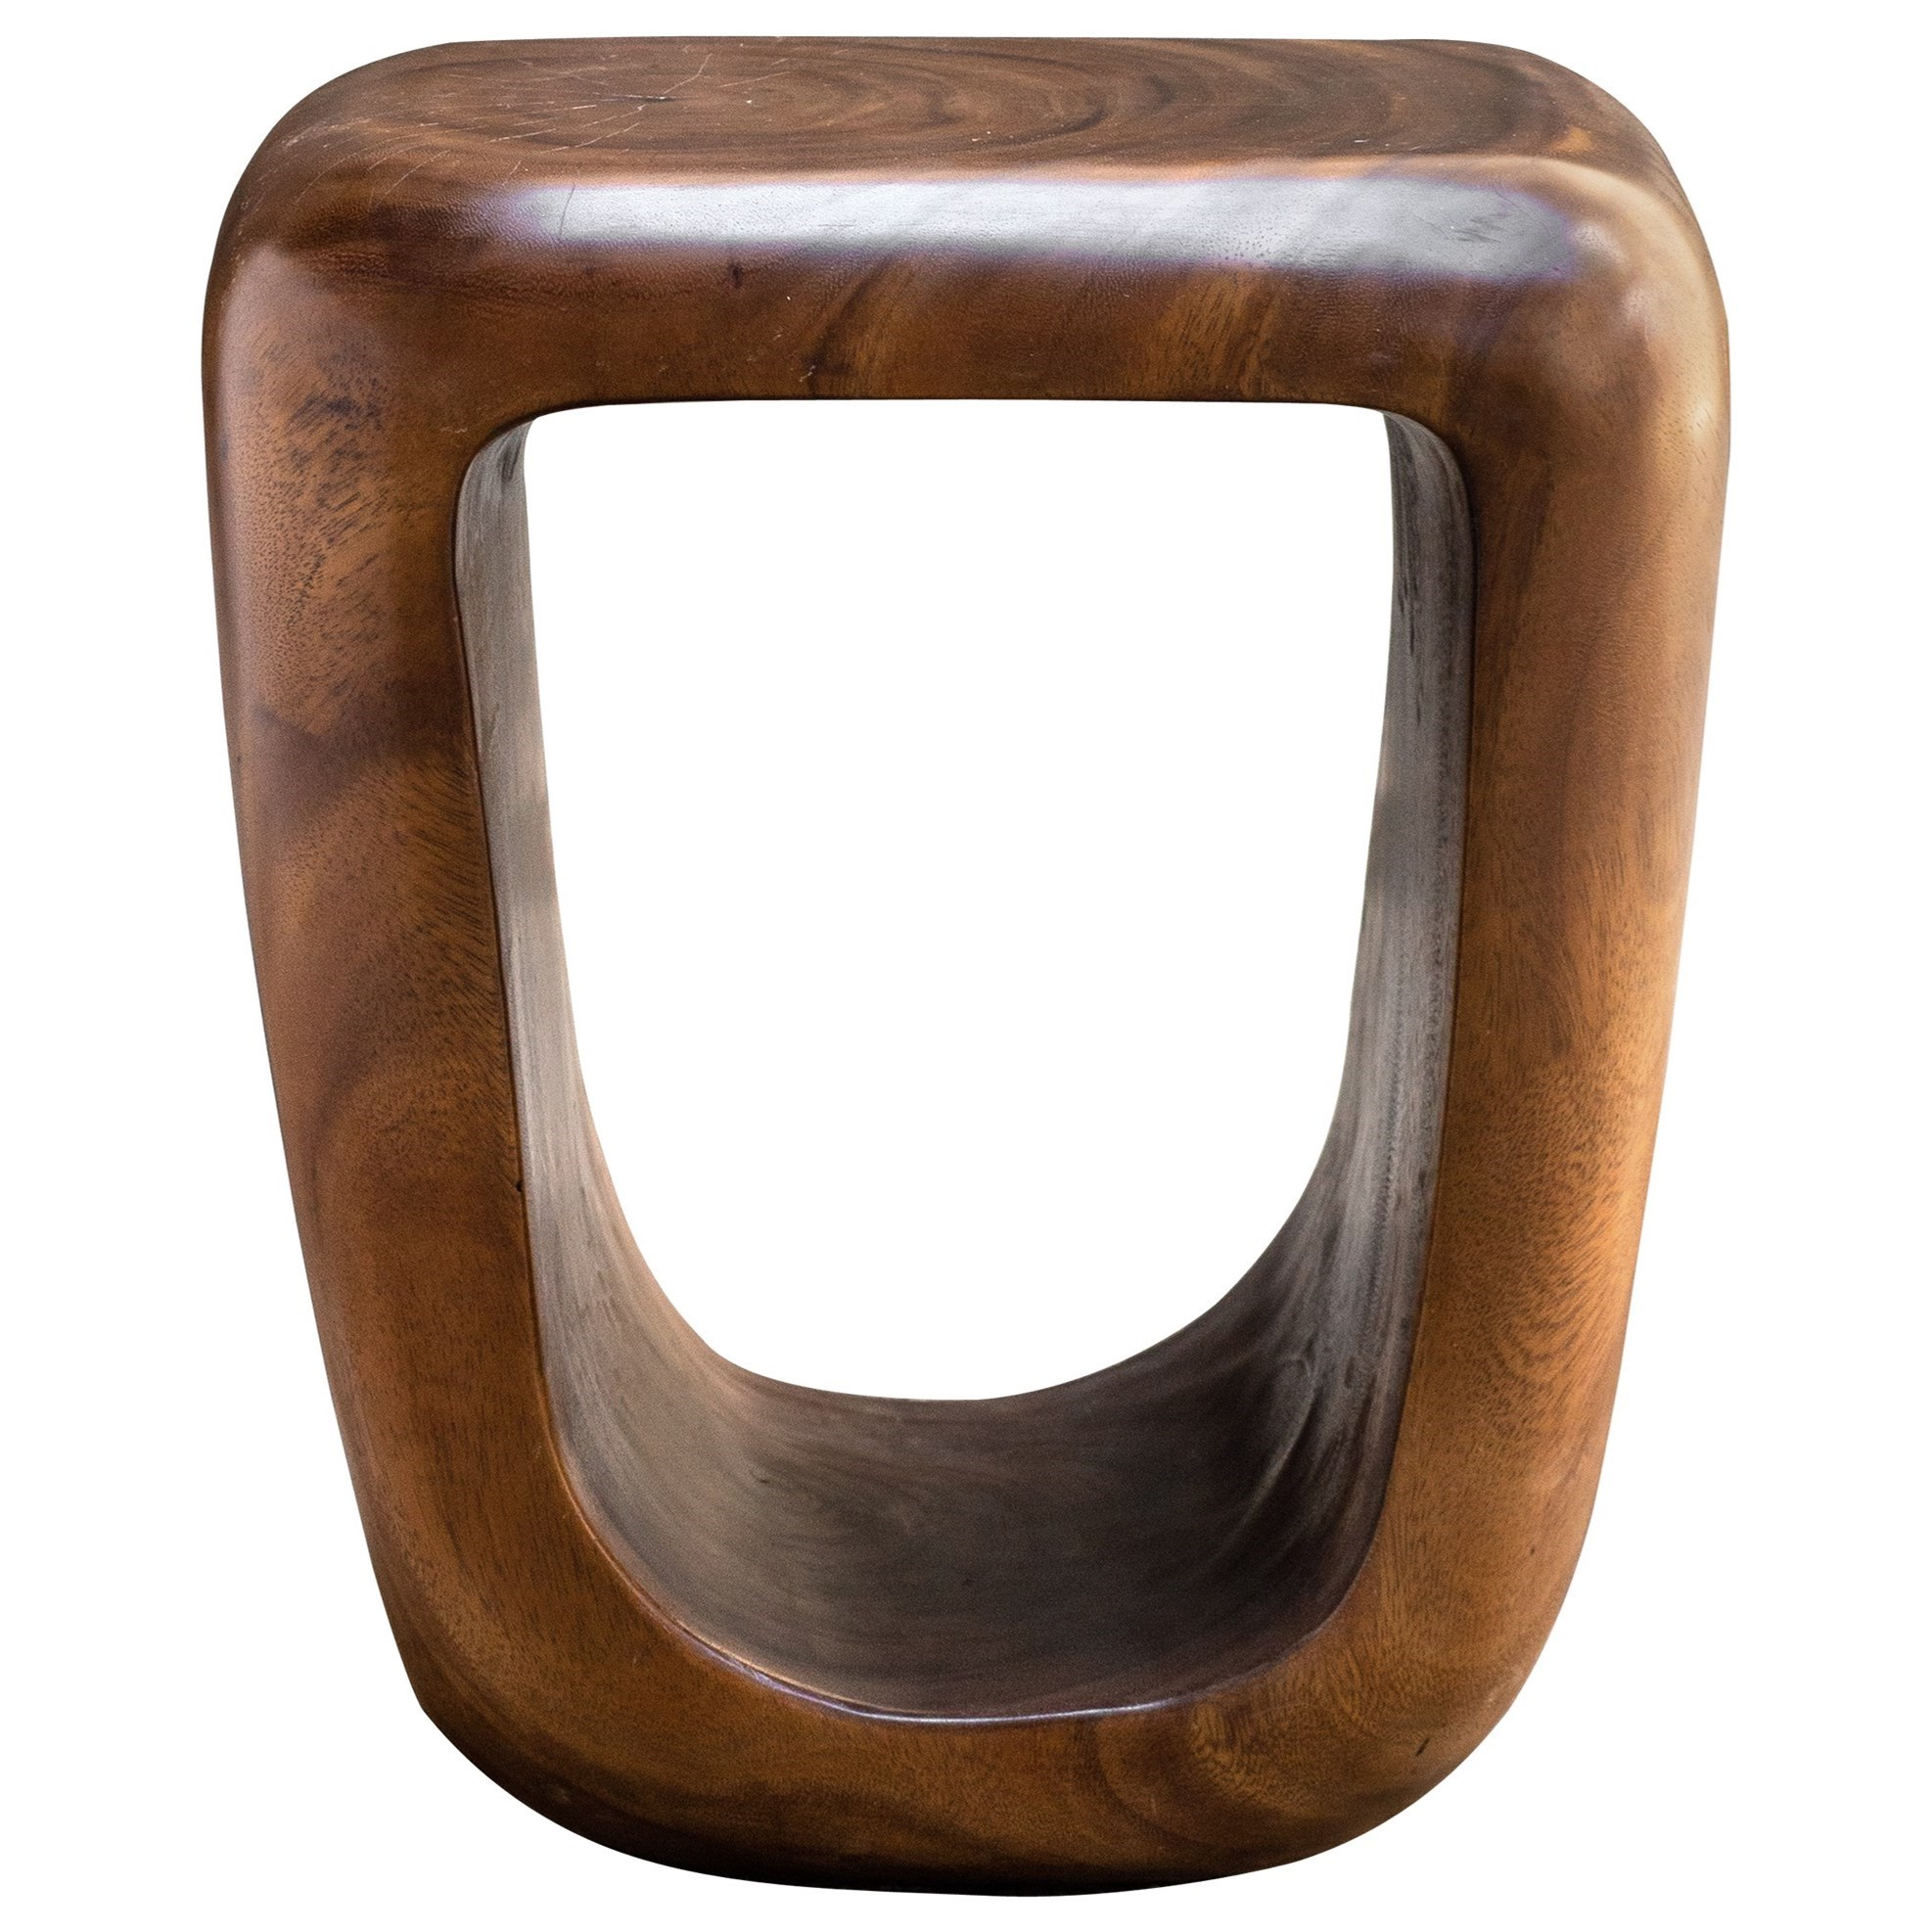 Accent Furniture - Stools Loophole Wooden Accent Stool by Uttermost at Mueller Furniture